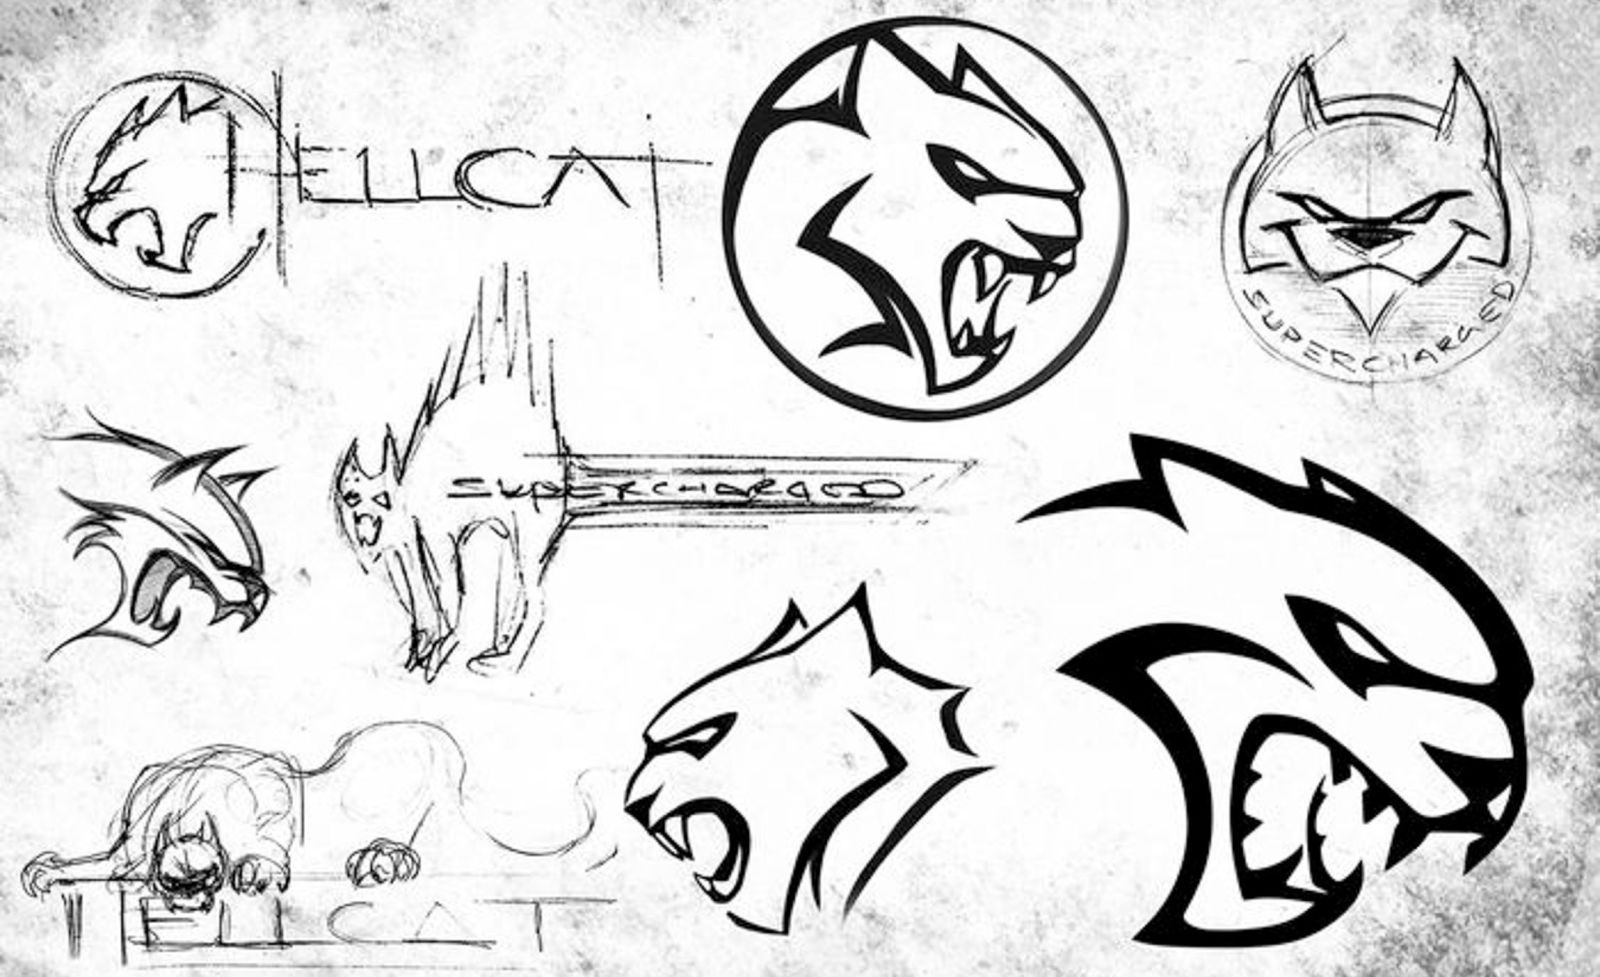 The Sketches That Evolved Into The Dodge Hellcat Logo